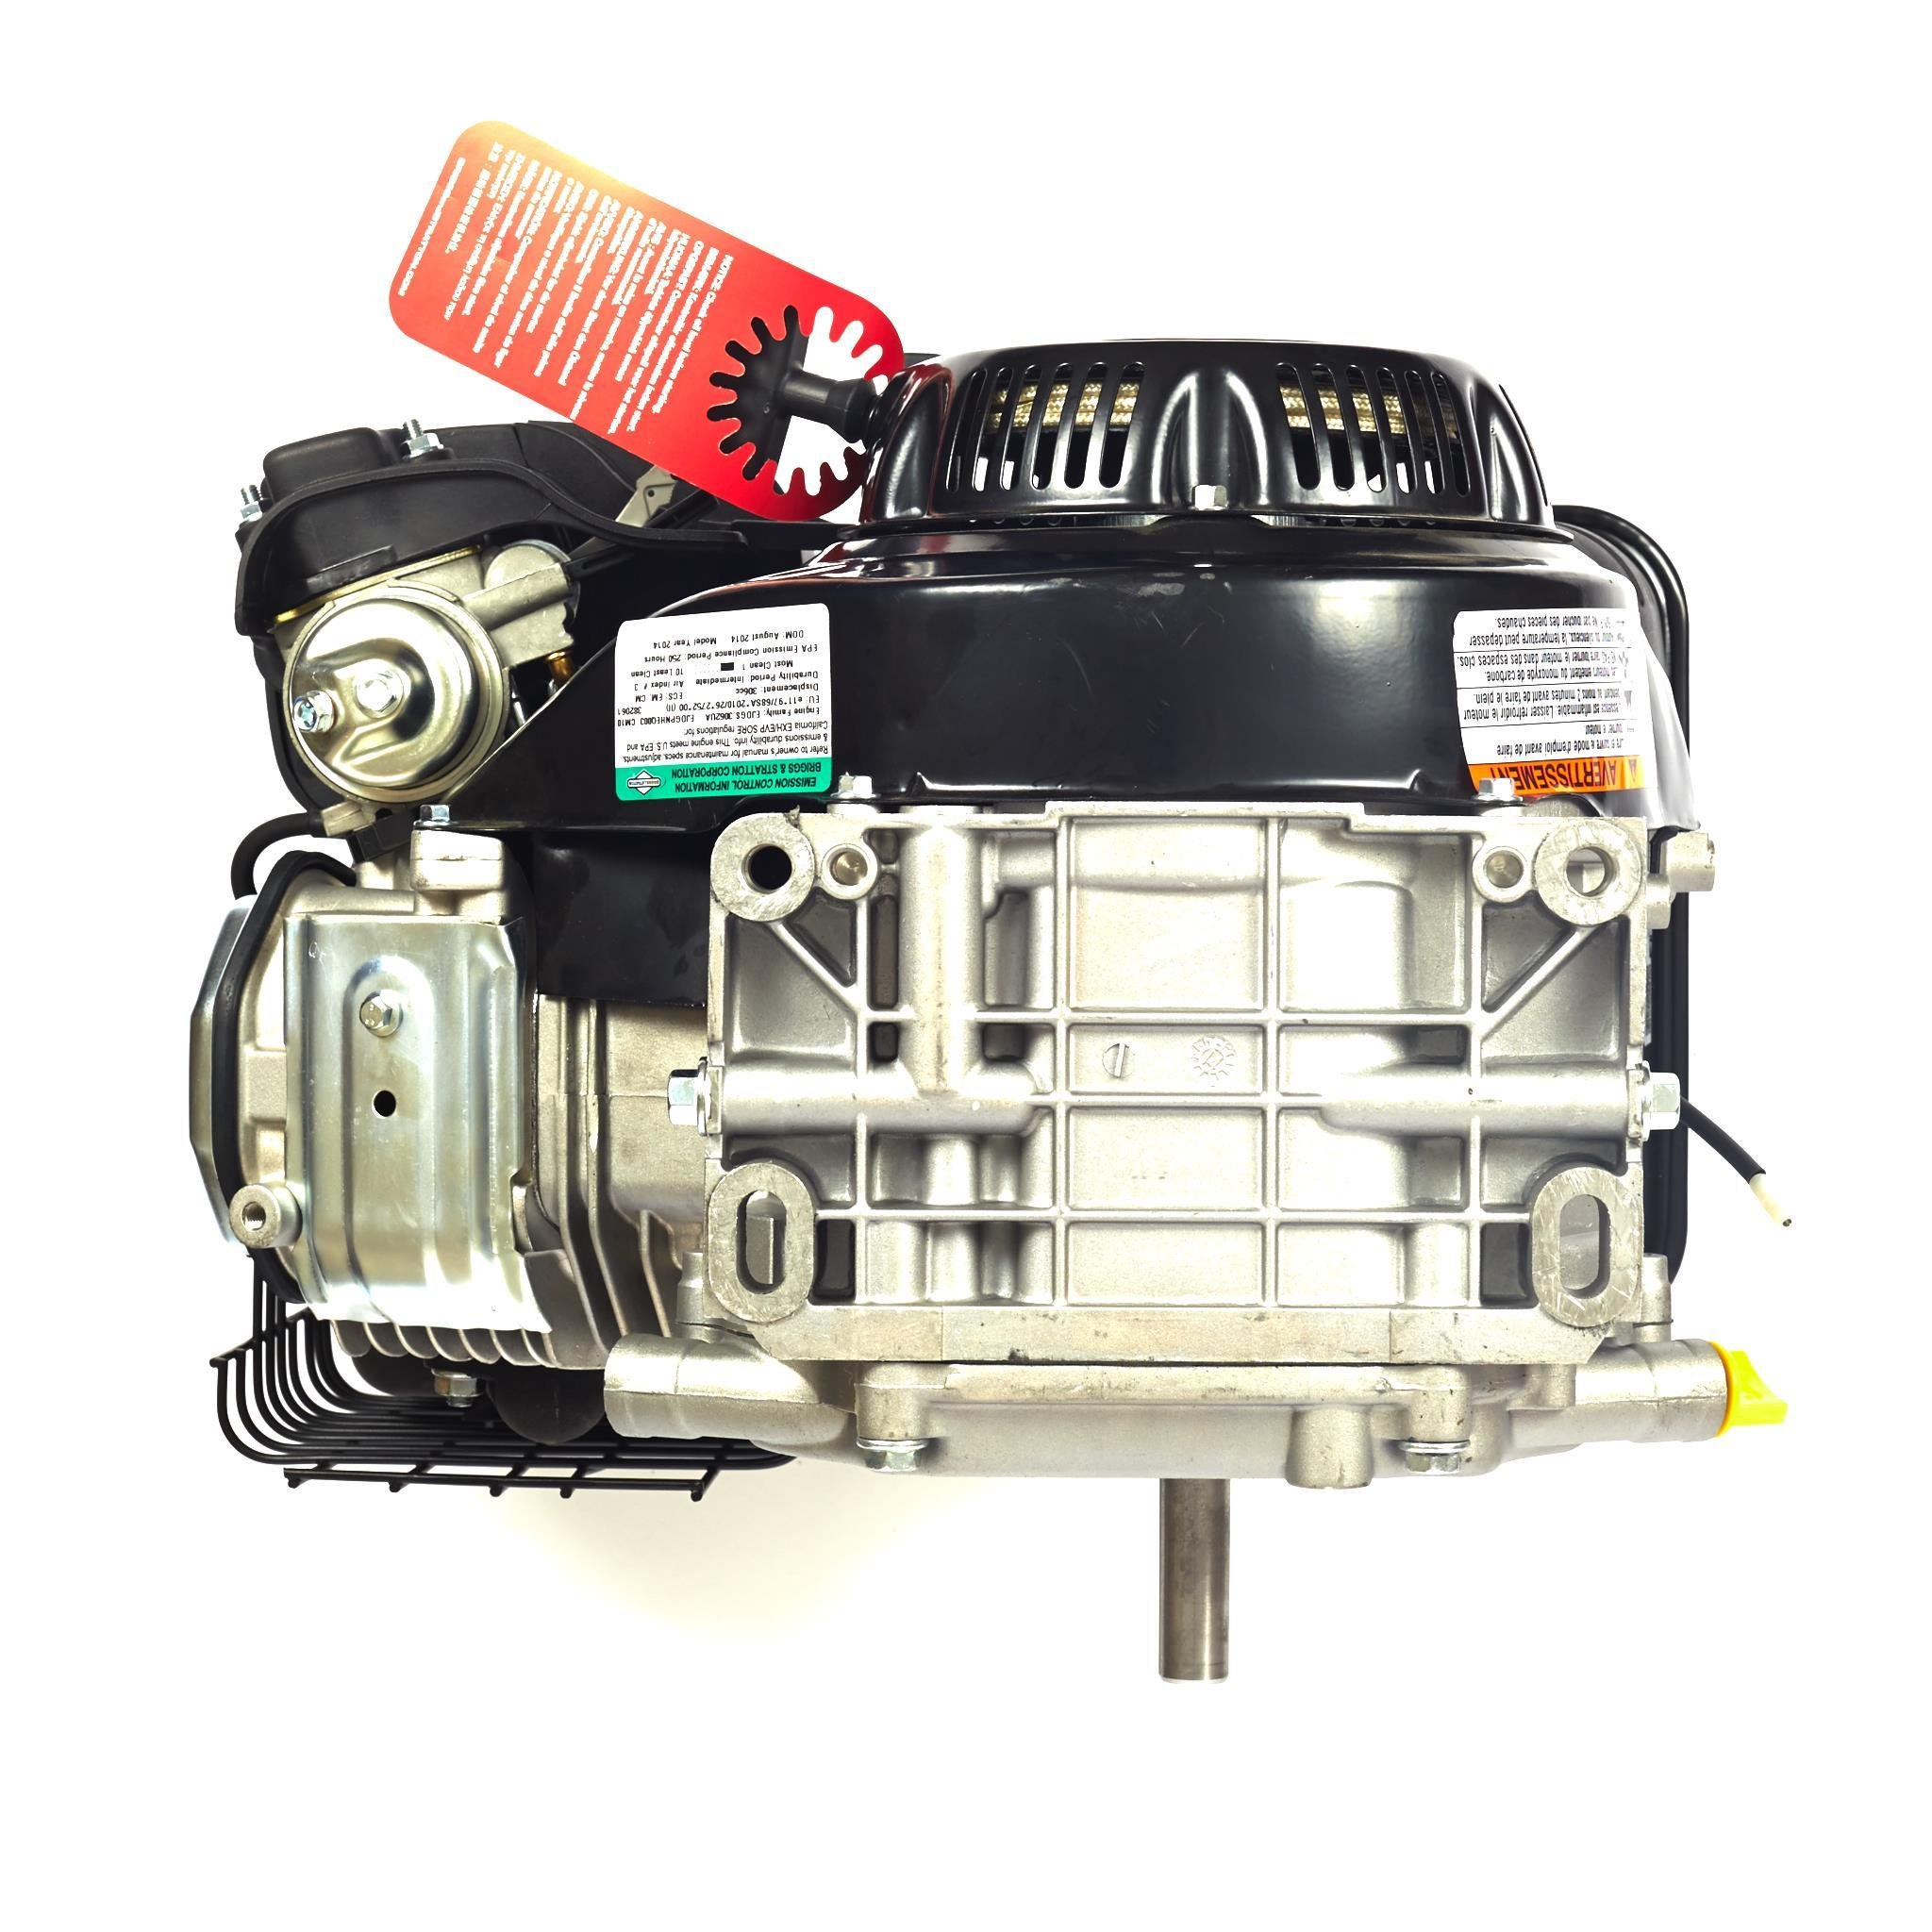 Briggs & Stratton 1450 Series Horizontal OHV Engine - 306cc, 3/4in  x  2 51in  Shaft, Model# 19N132-0051-F1